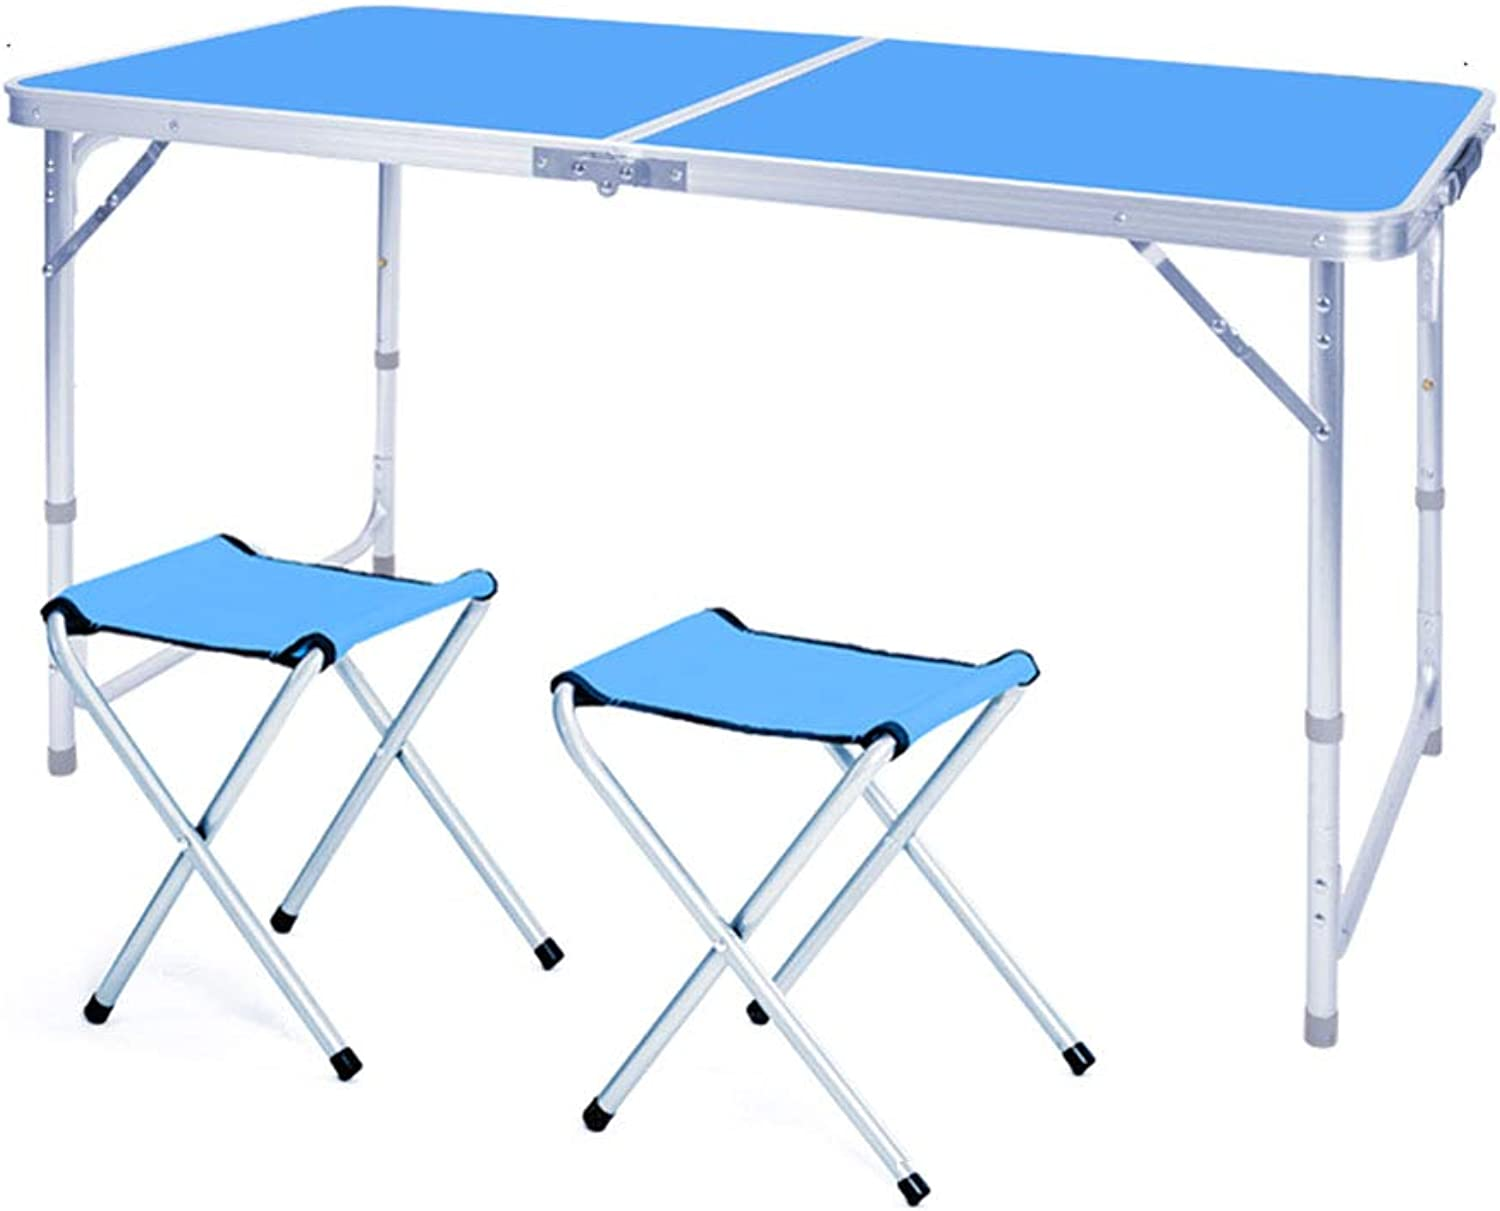 NJLC Folding Small Table, Simple Portable Folding Side Table Dining Camping Party Half Table,bluee,XS